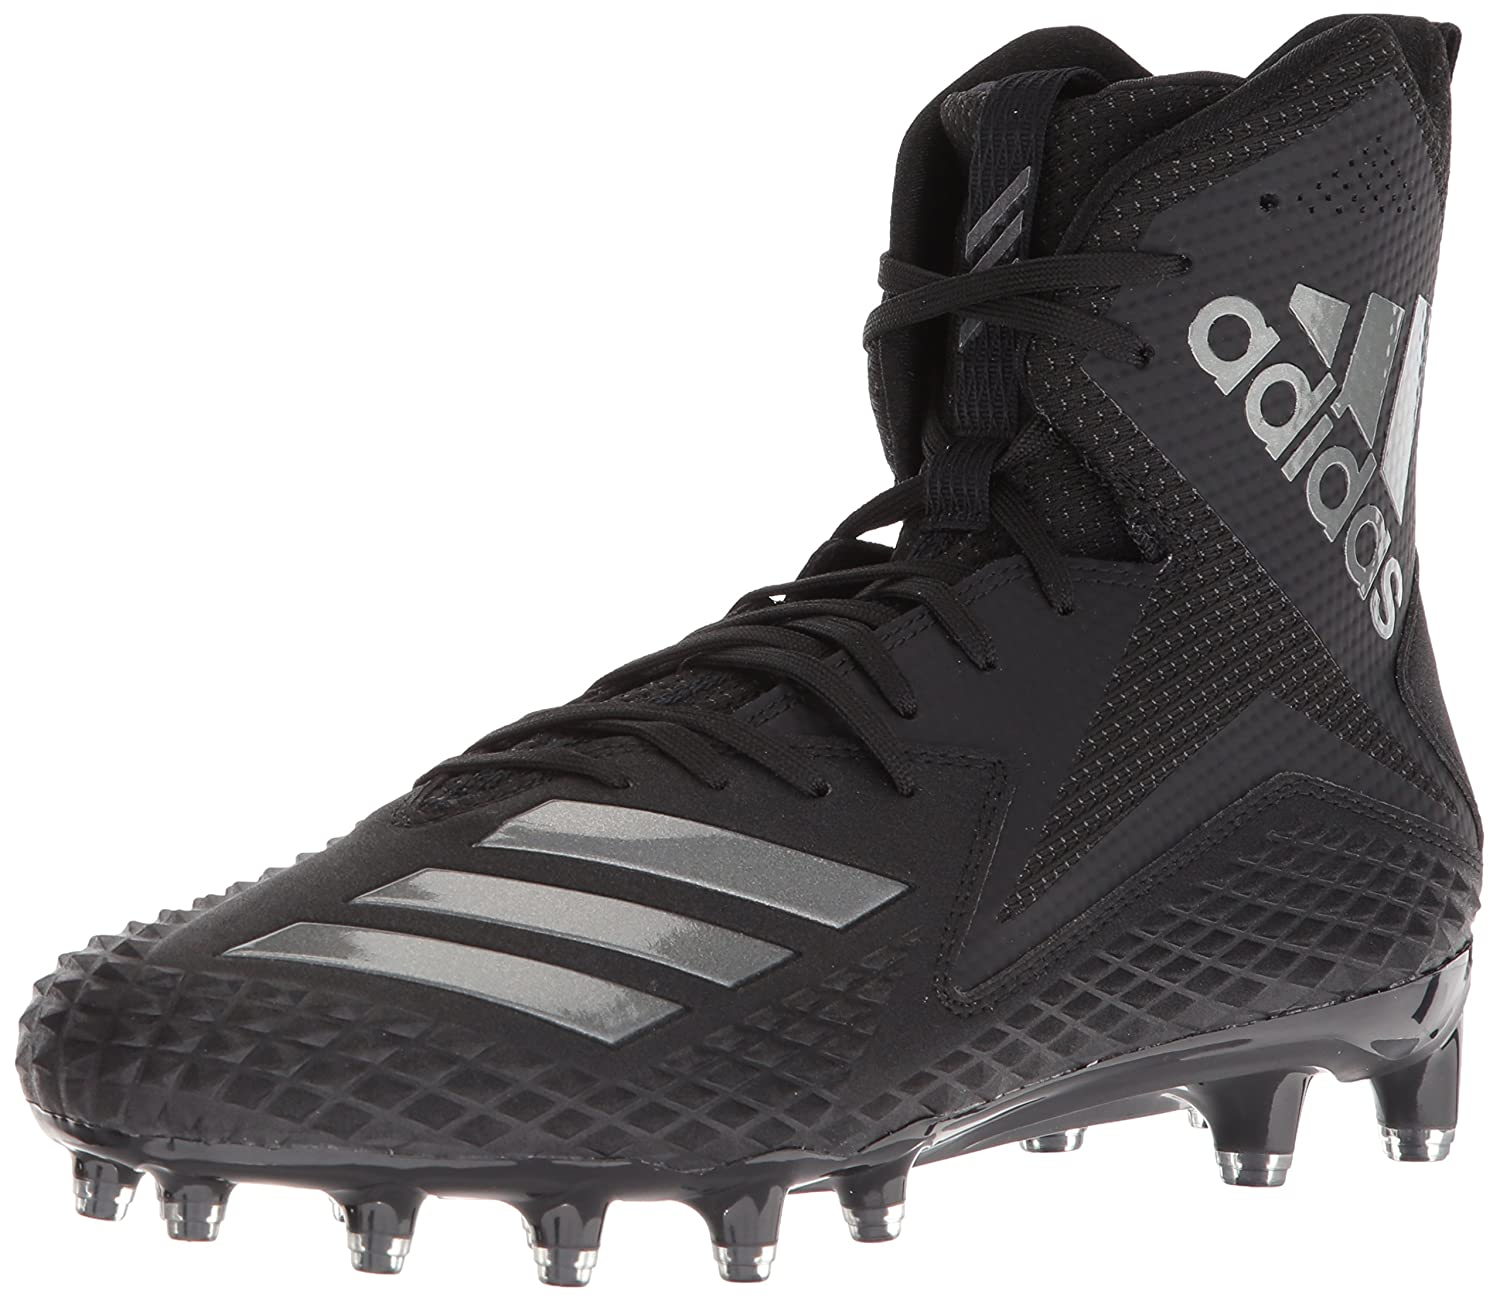 Adidas Herren High Freak X Carbon Mid Football-Schuhe B0719JYKRJ  | Modernes Design